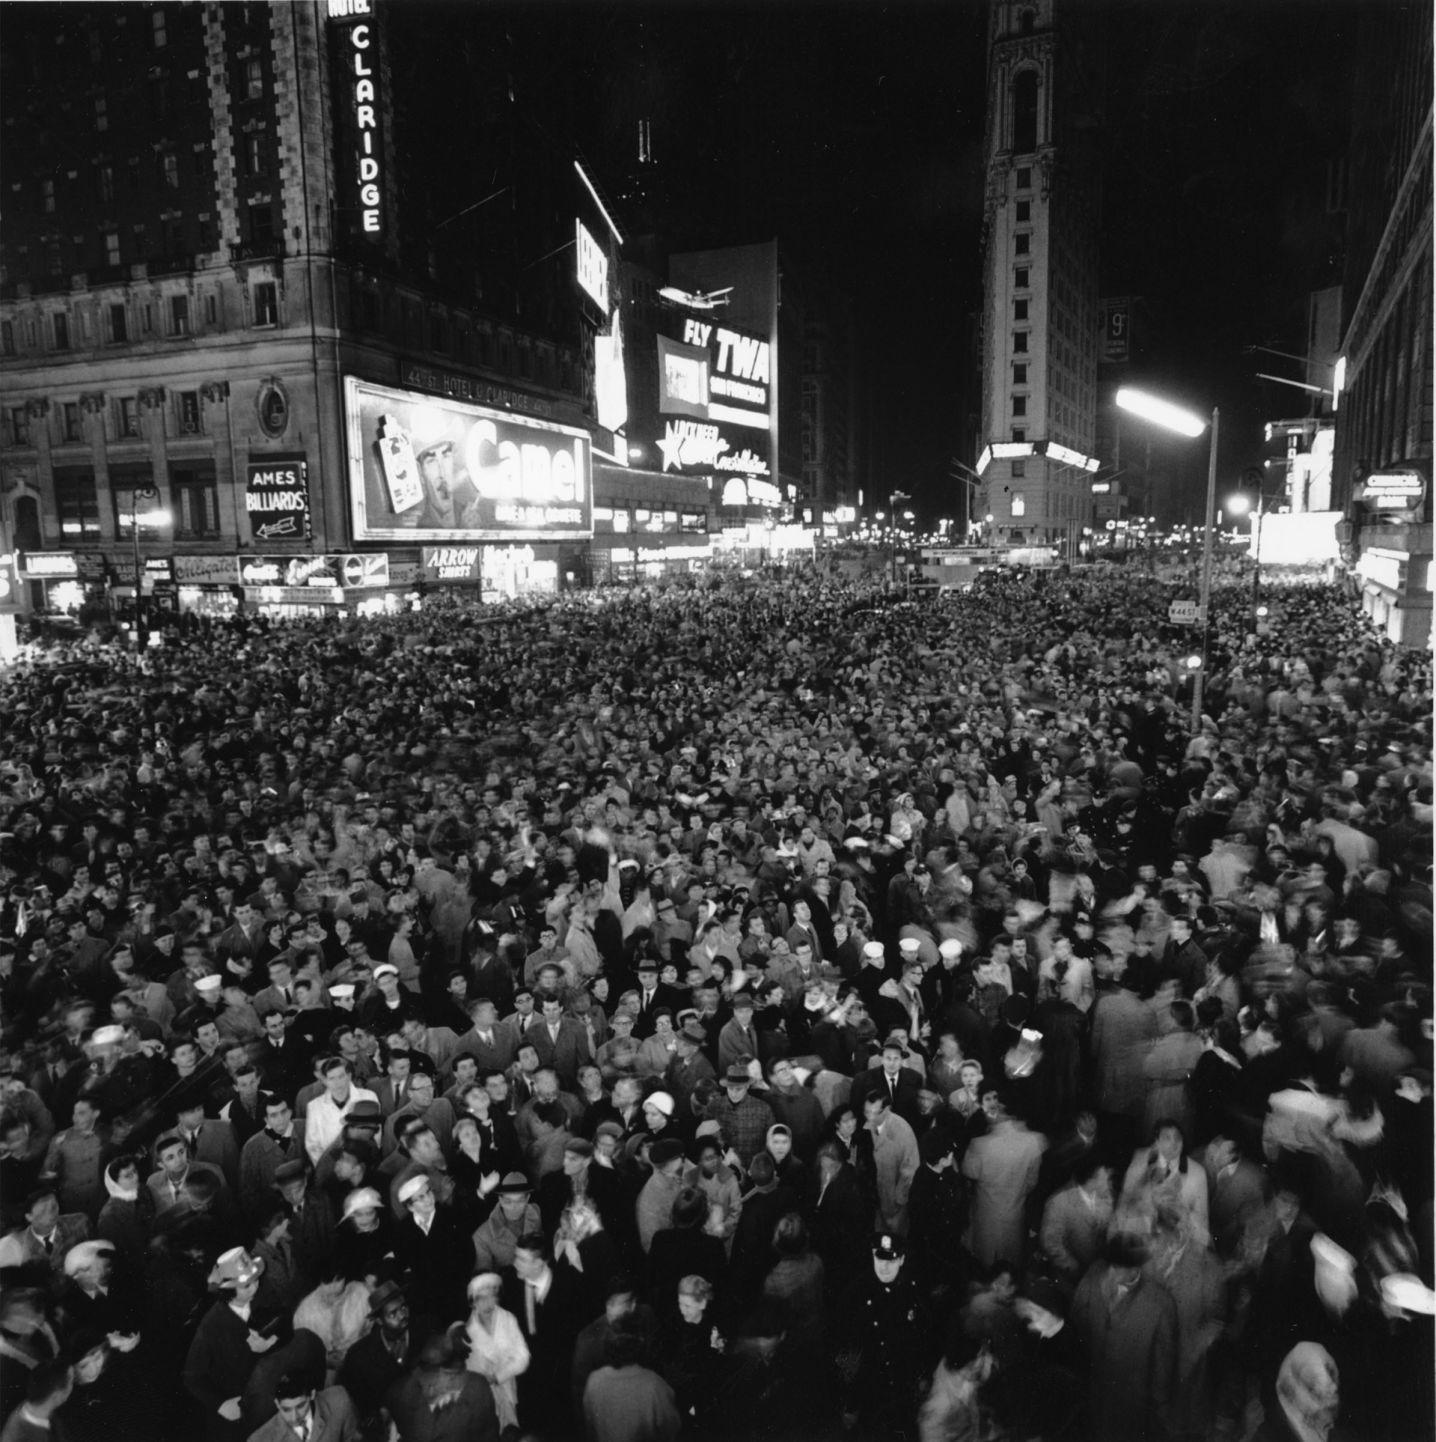 New York's Time's Square, New Year's Eve, 1959